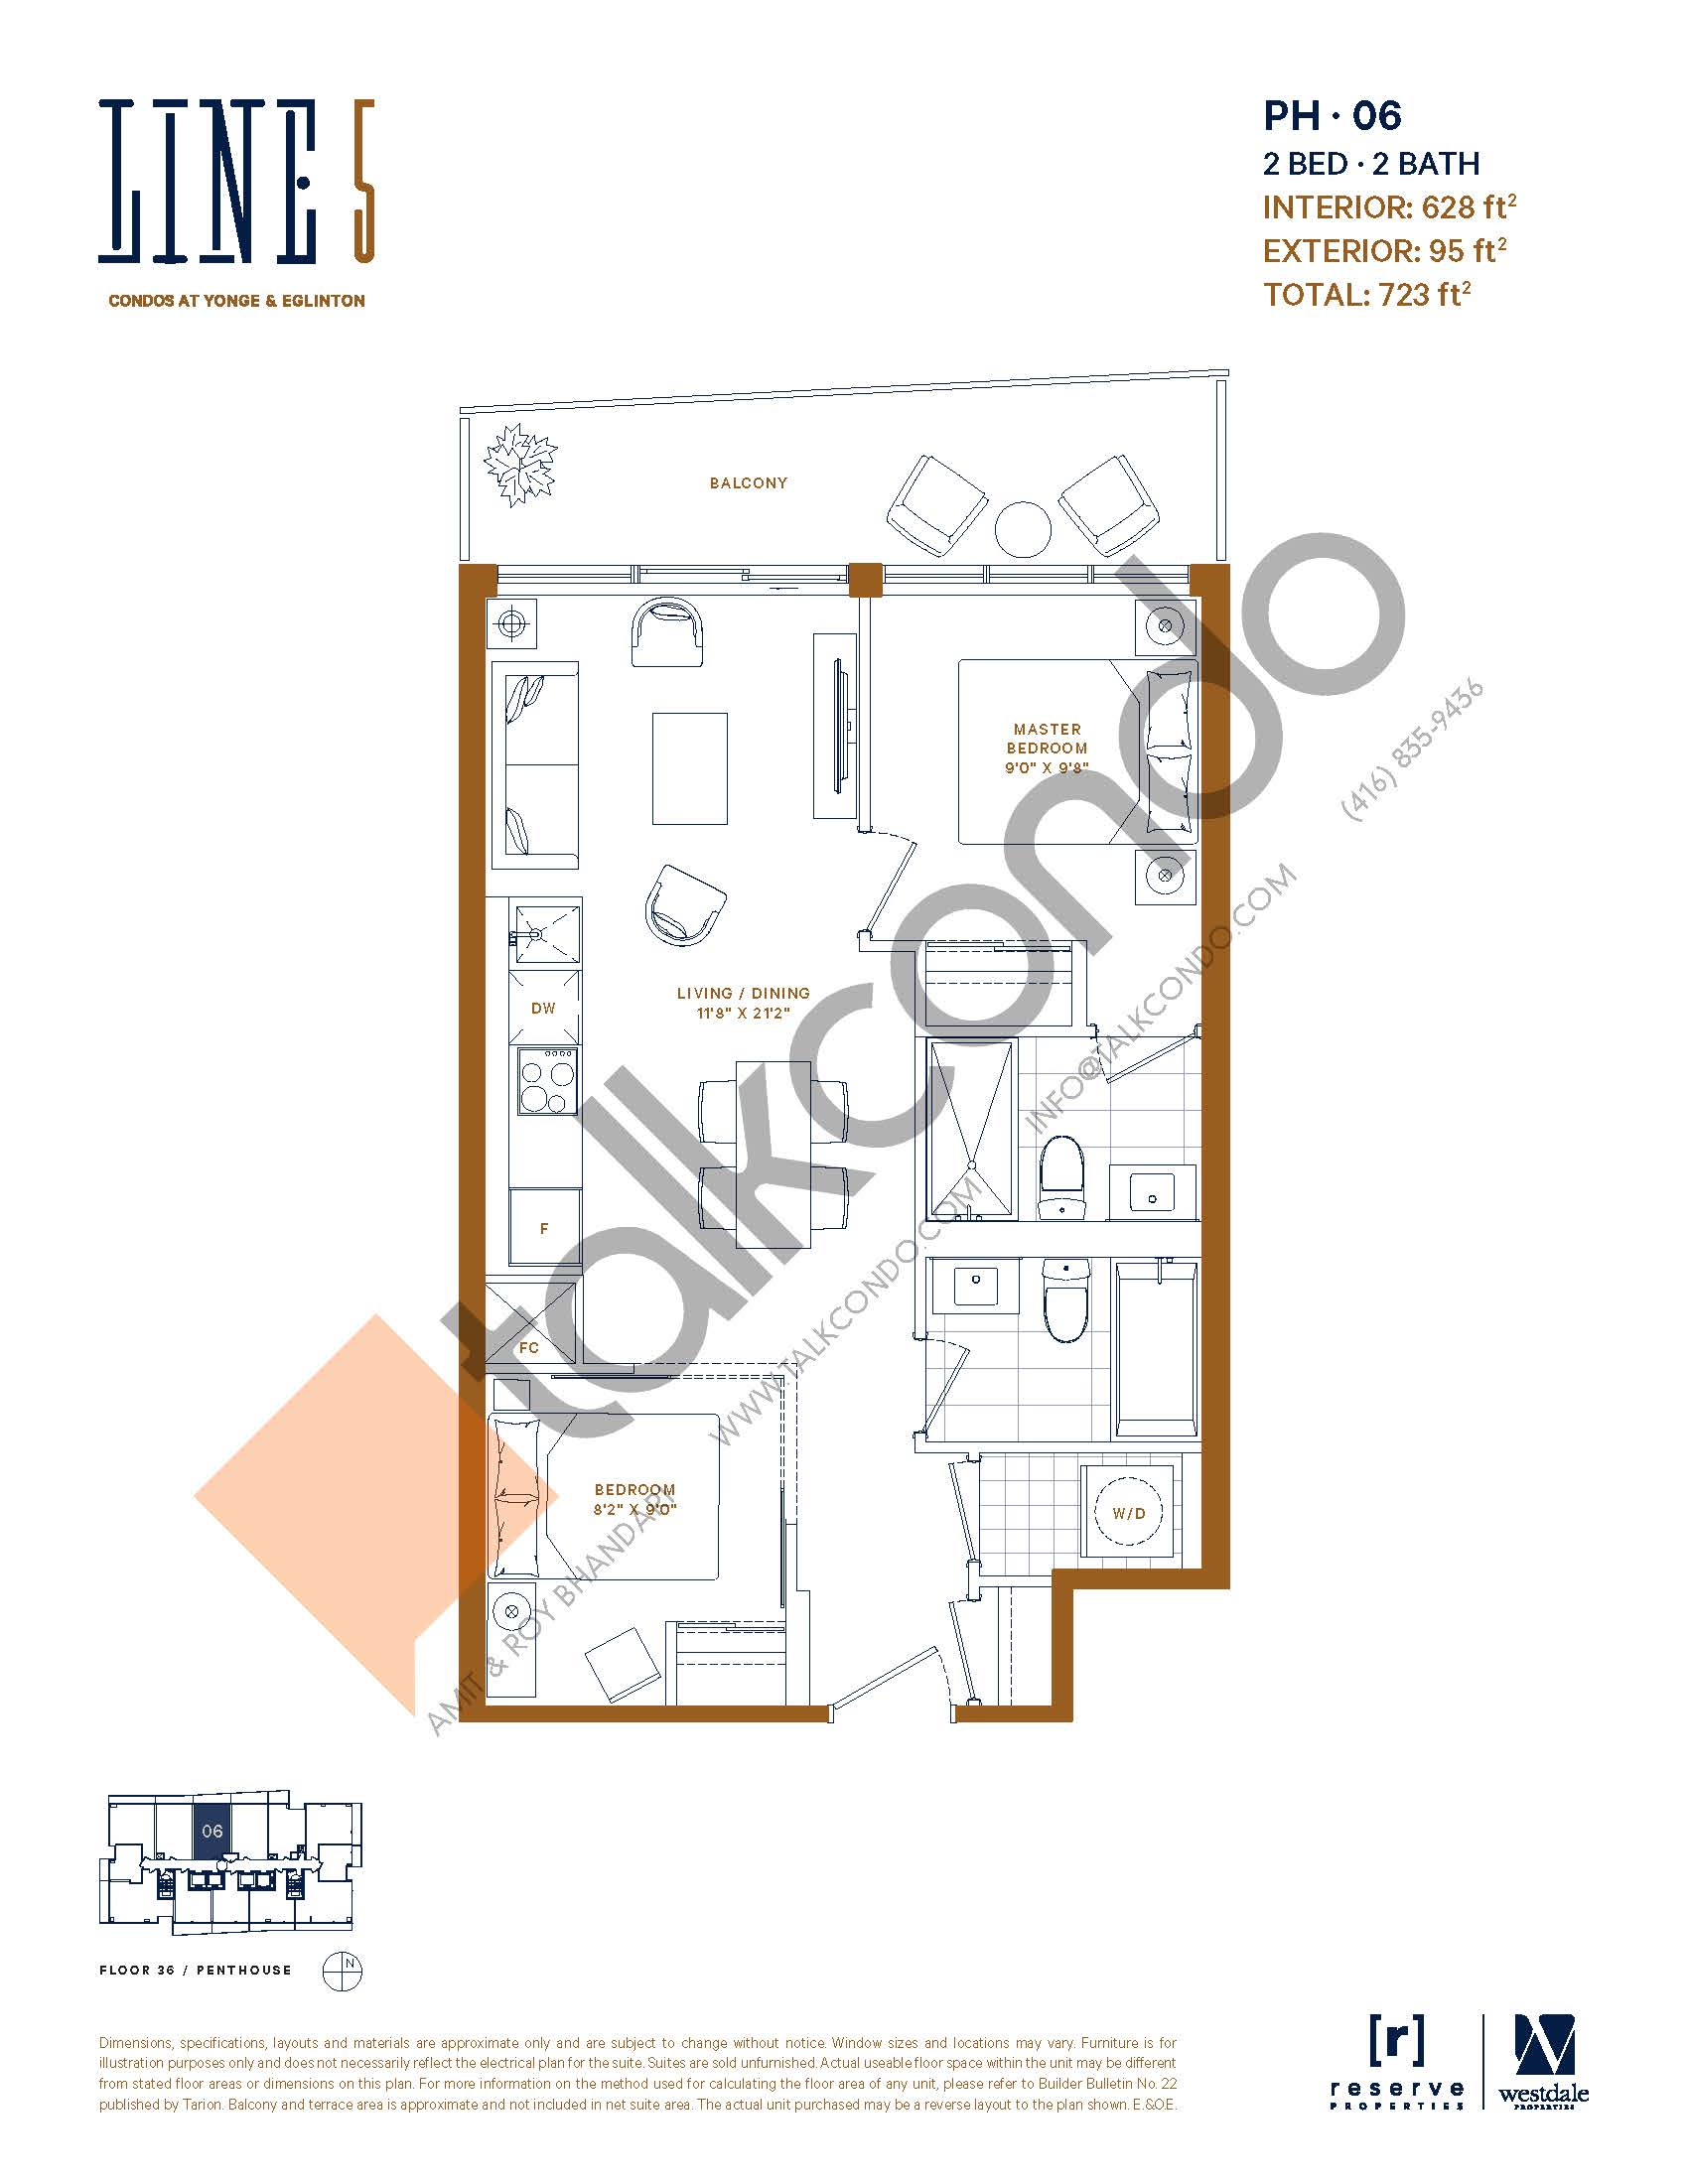 PH-06 Floor Plan at Line 5 South Tower Condos - 628 sq.ft